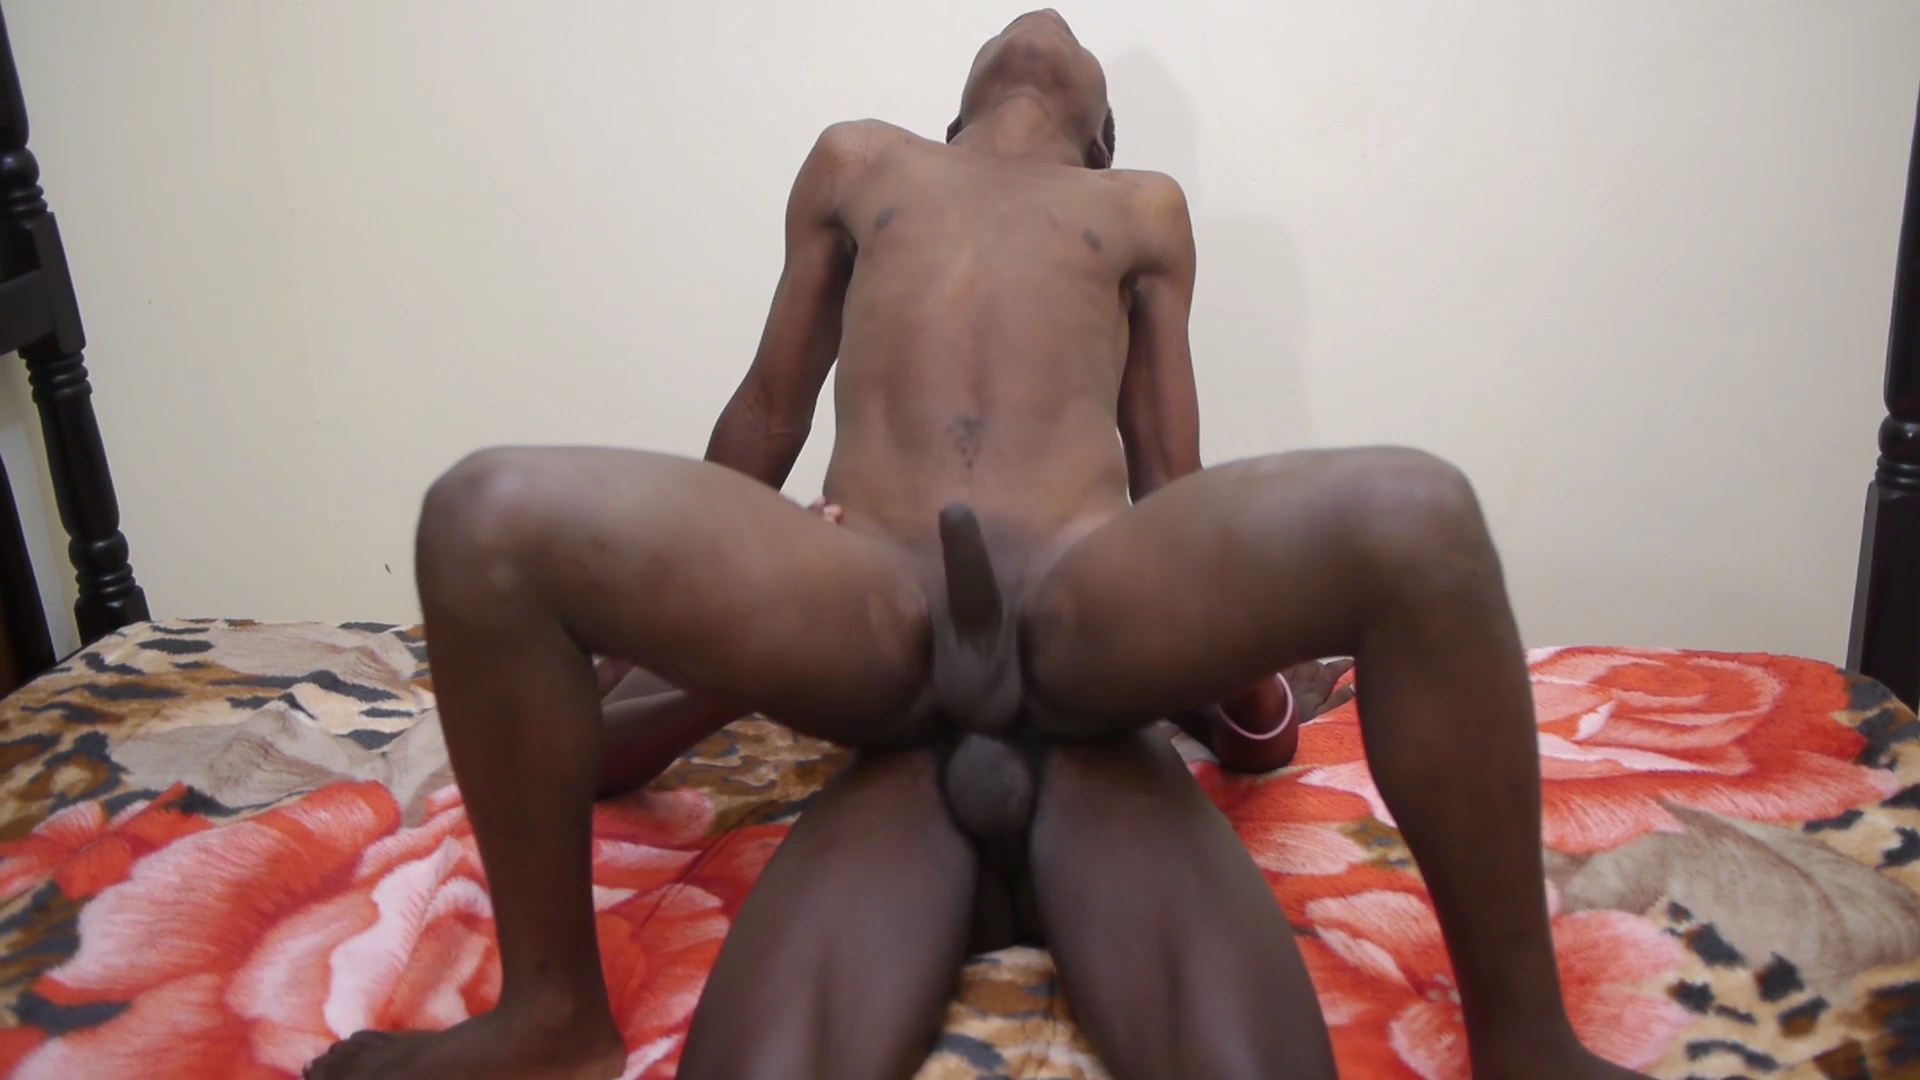 Pias and Vincent Bareback - 80Gays Hookup a member of omega psi phi